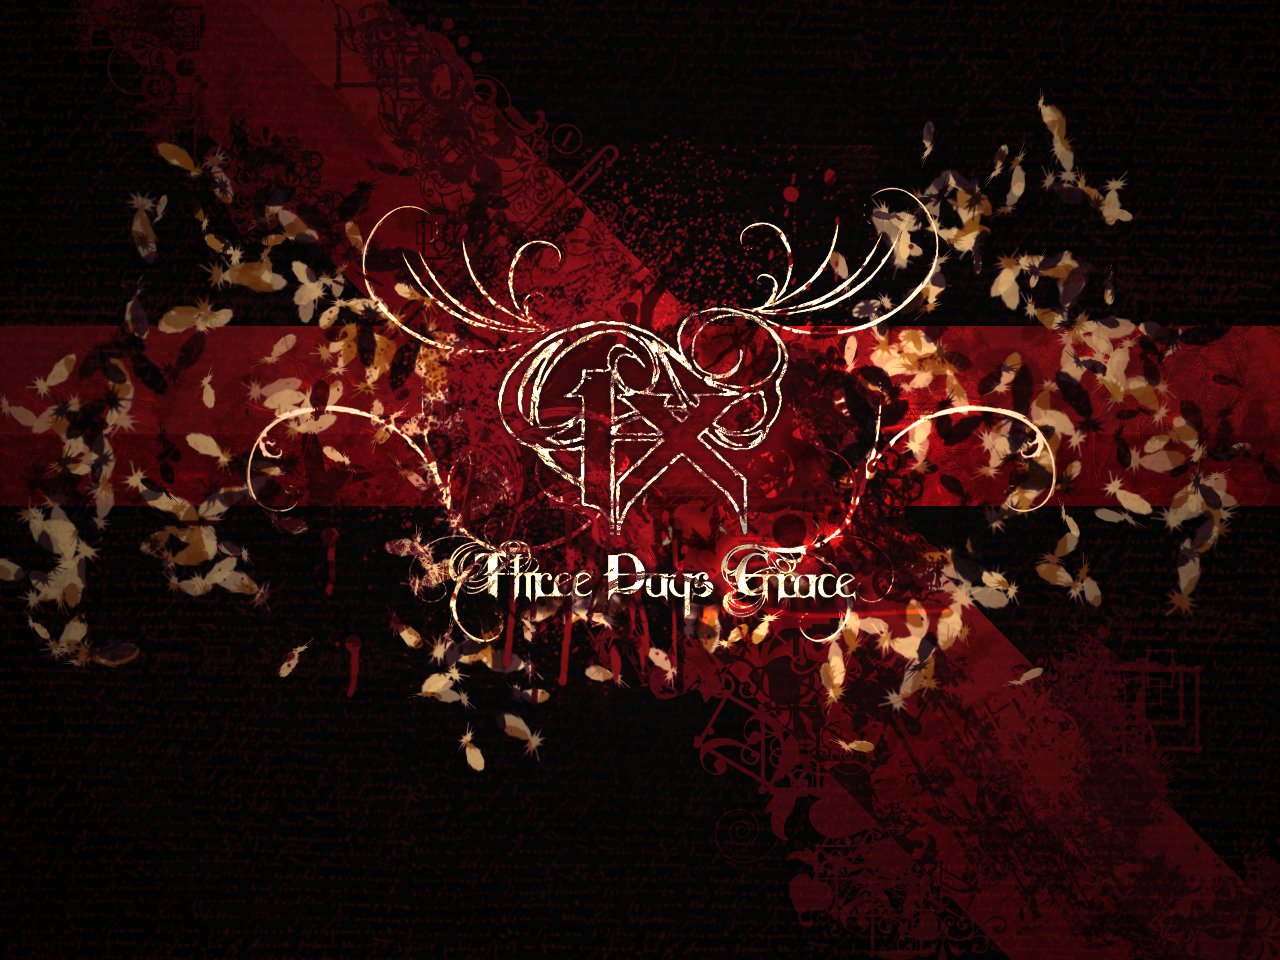 Three Days Grace Computer Wallpapers Desktop Backgrounds 1280x960 1280x960